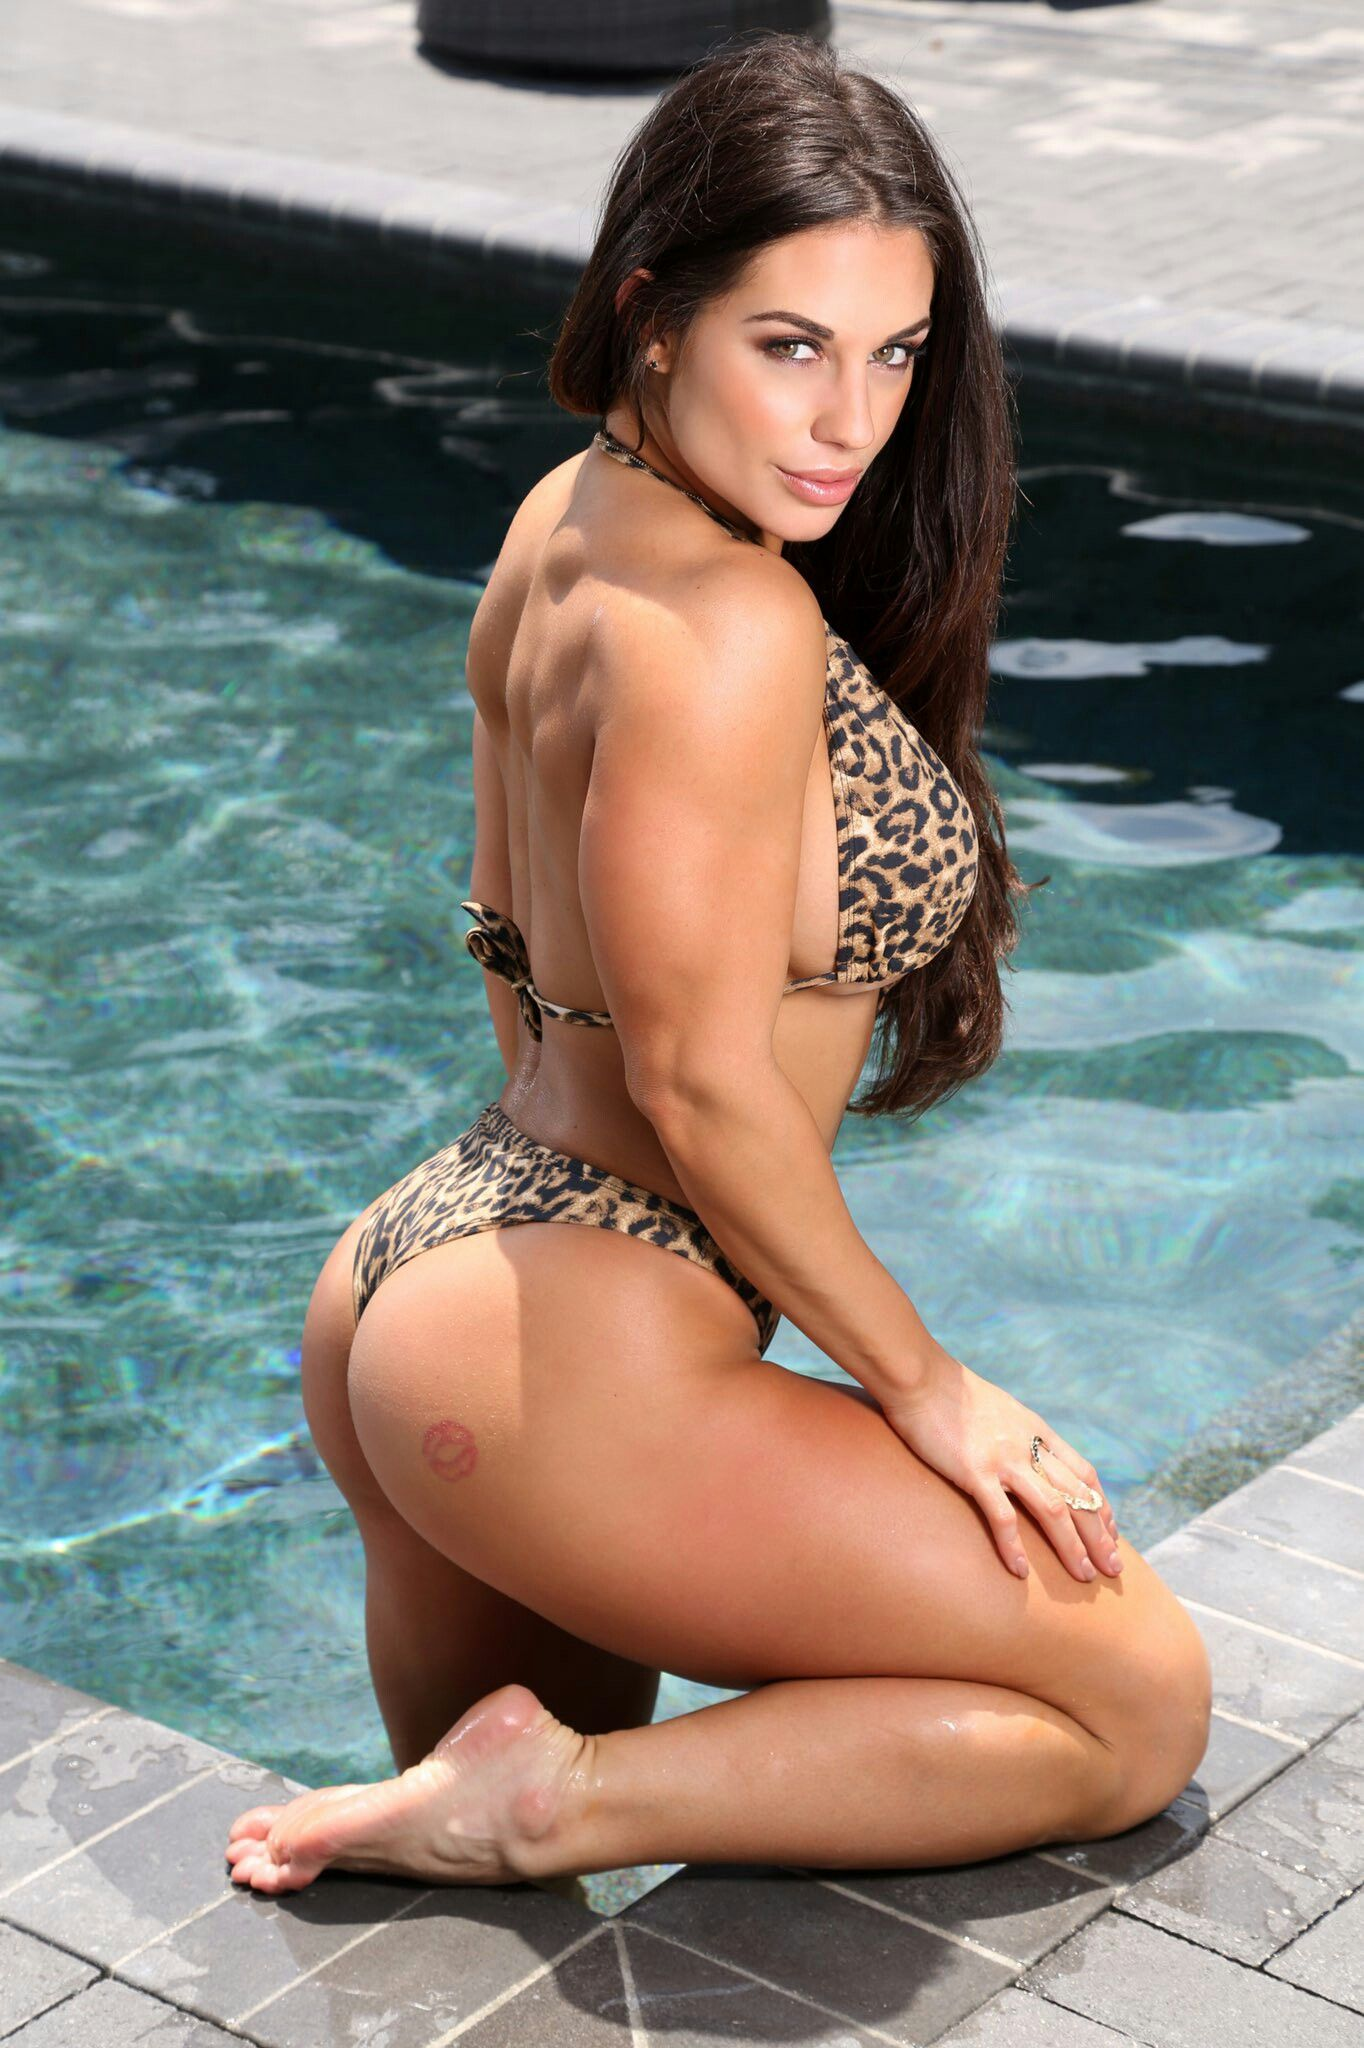 Erotica Celeste Bonin nudes (96 foto and video), Tits, Is a cute, Instagram, butt 2019